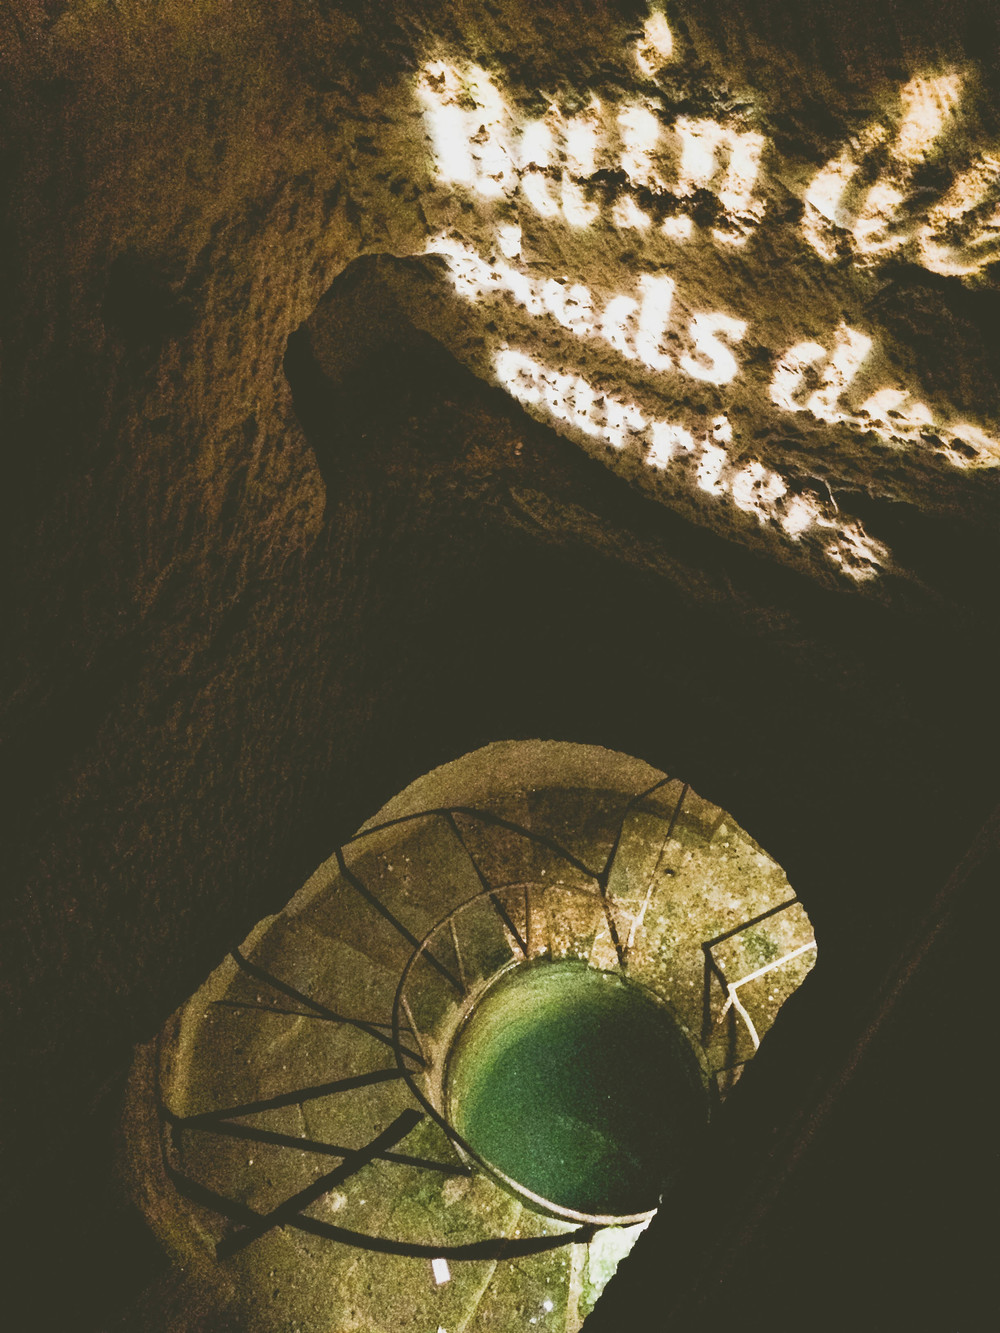 A look into a well inside the catacombs.